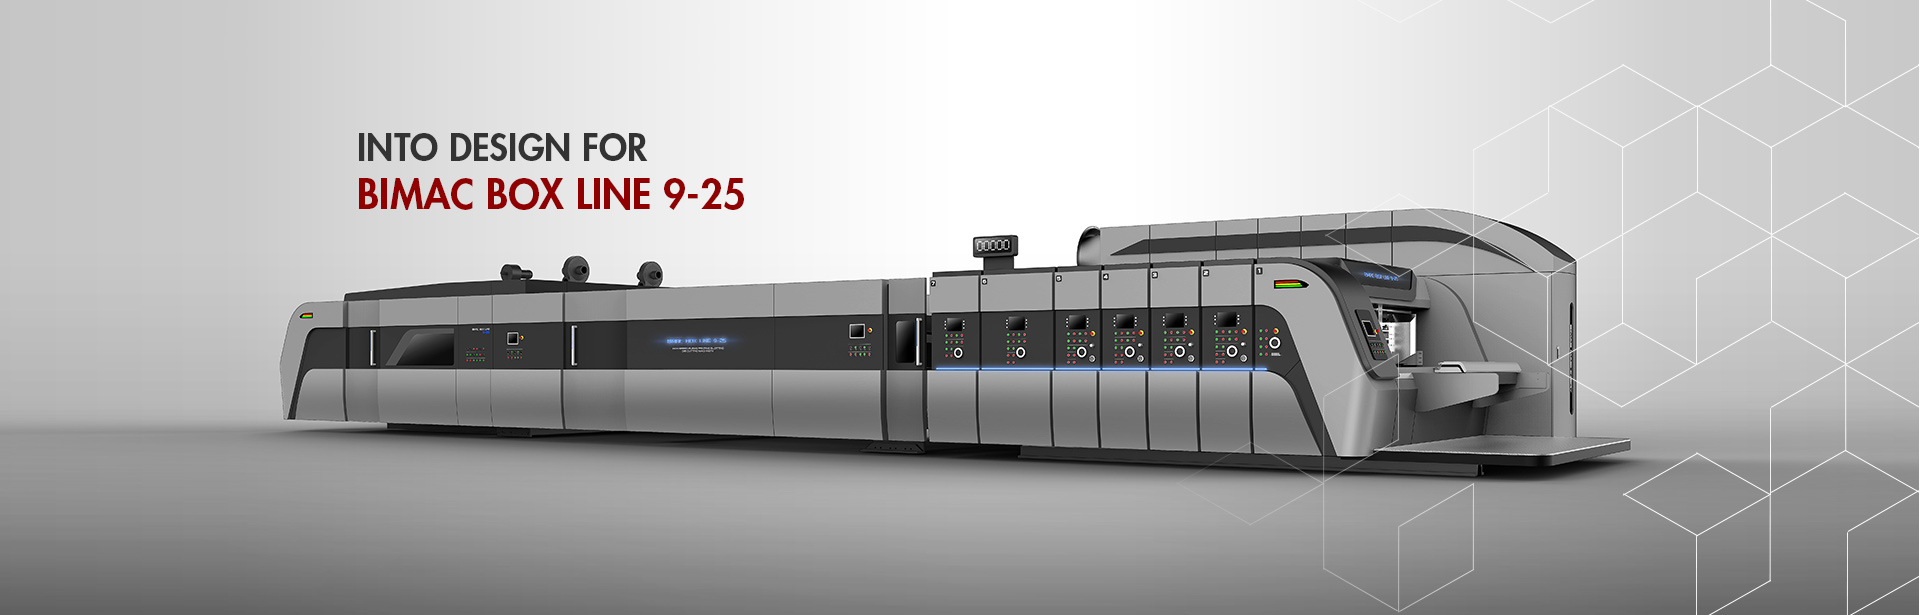 Into Design for Bimac Box Line 9-25